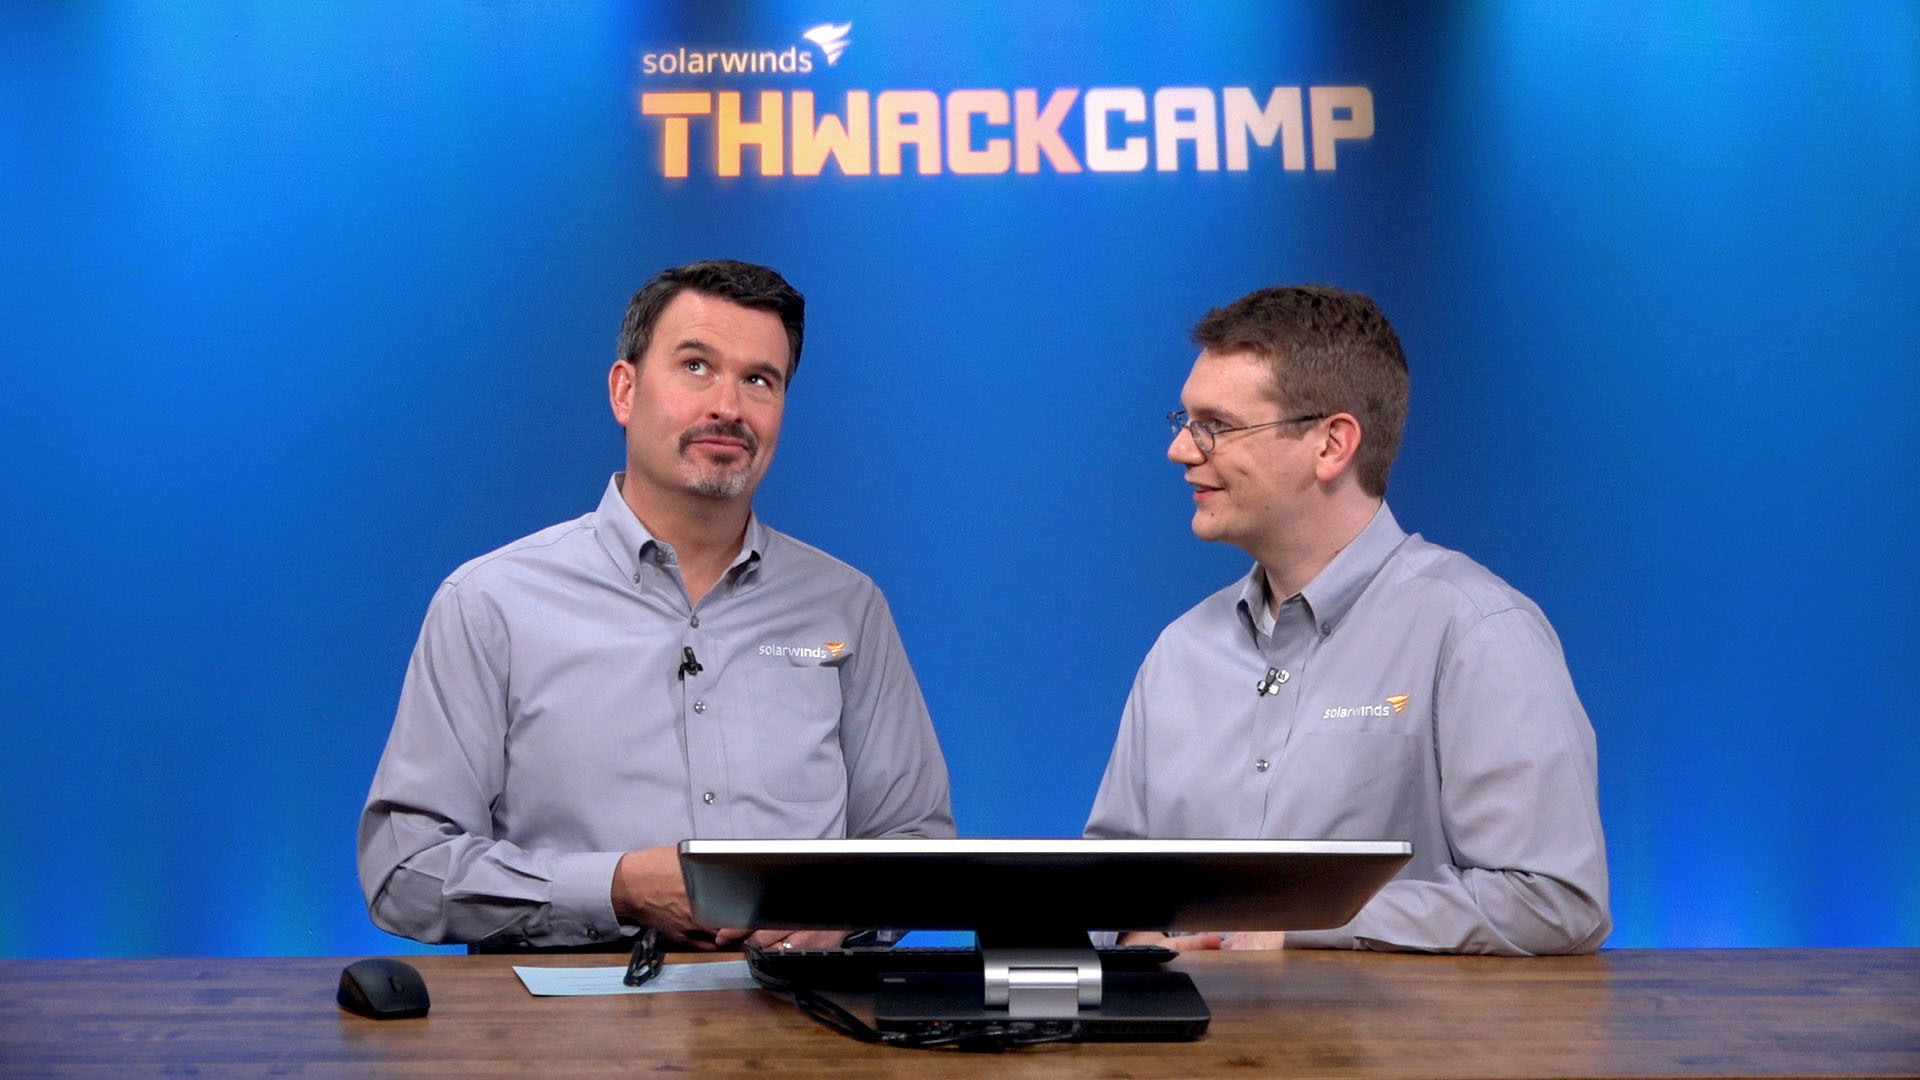 THWACKcamp 2017 - Orion in the Cloud: Hybrid IT User Stories and Best Practices